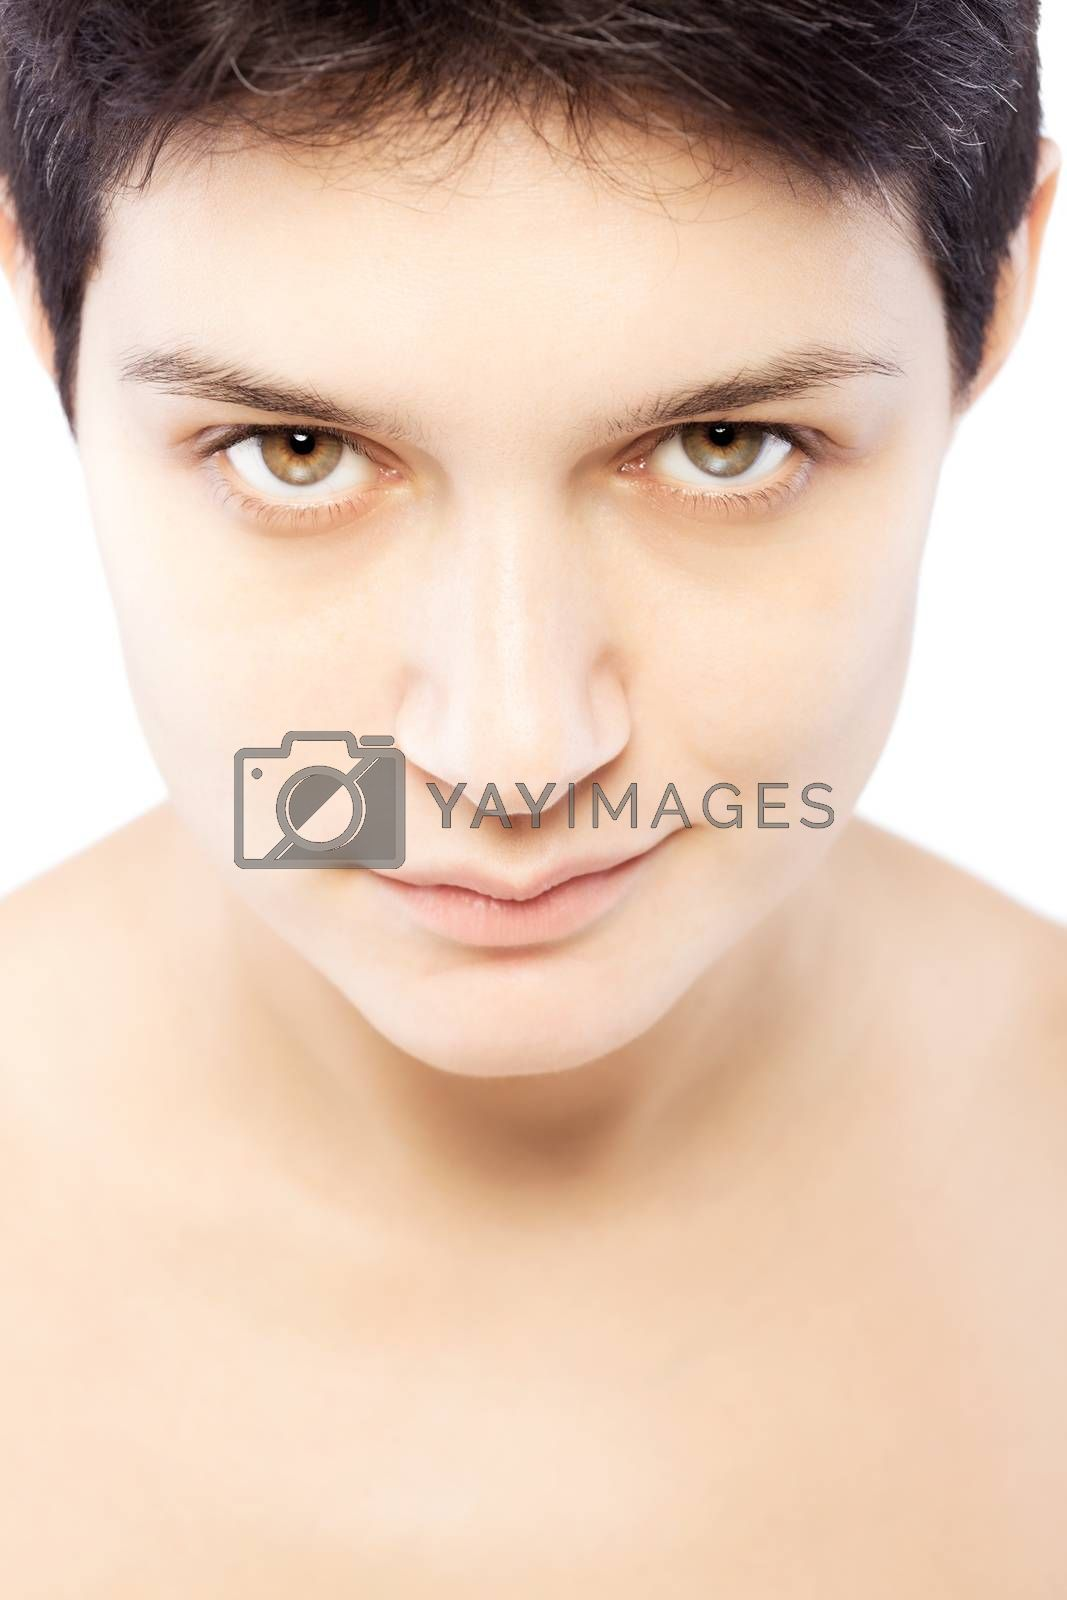 girl with a short hair looking at camera, positive expression